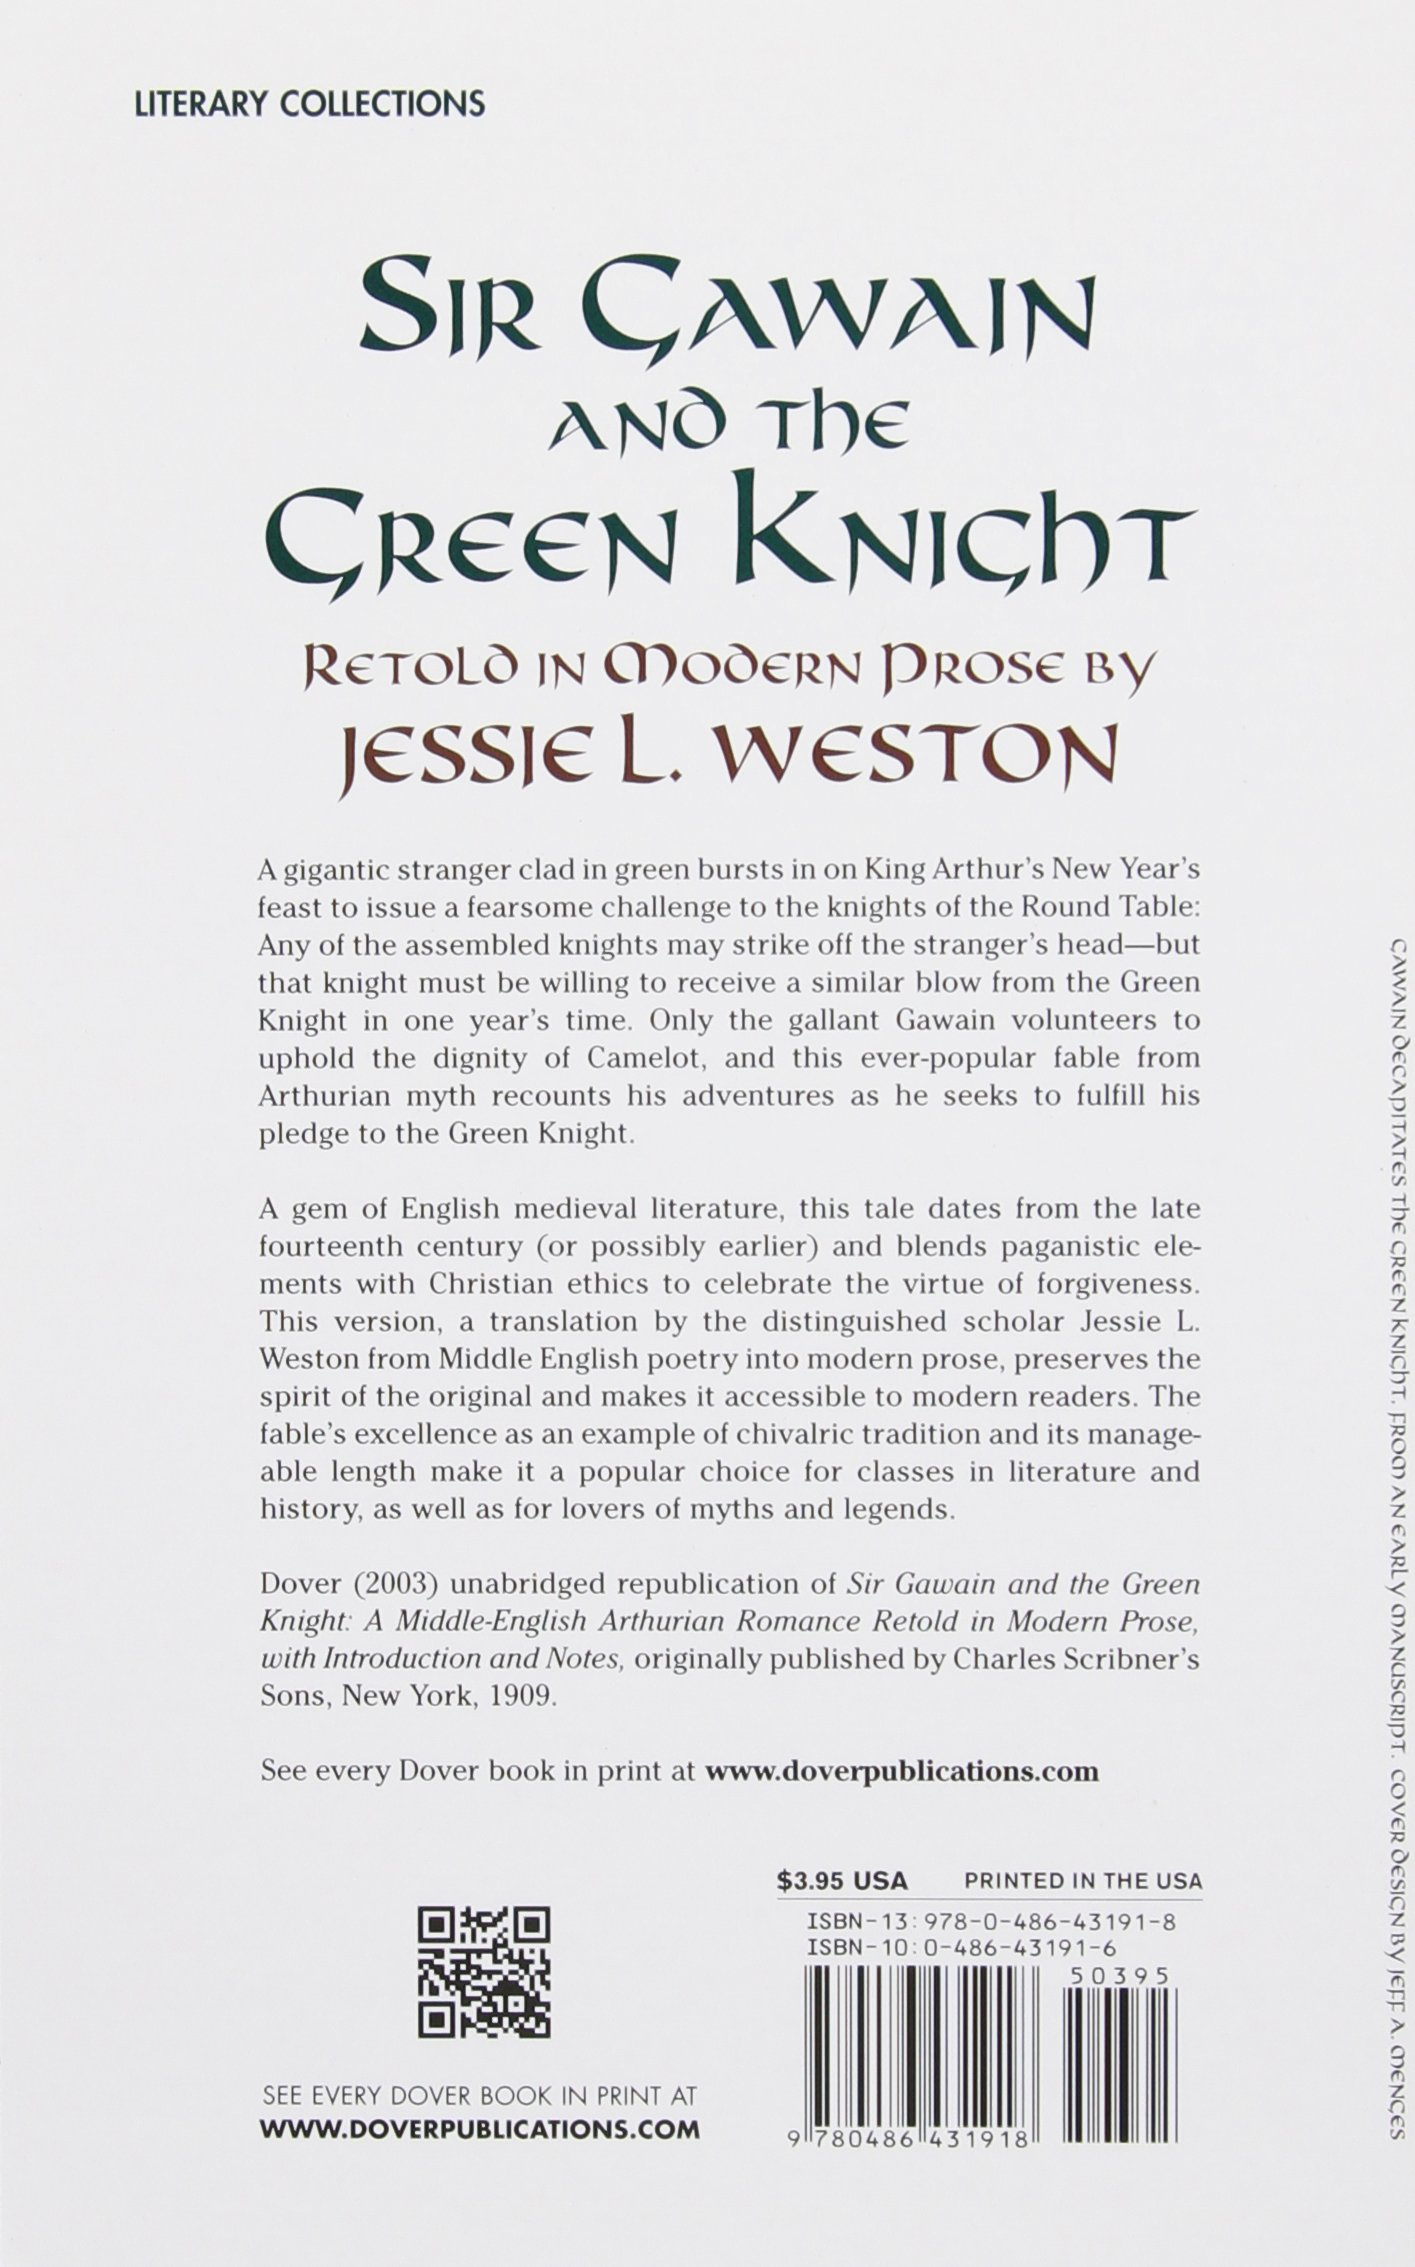 sir gawain and the green knight dover books on literature drama sir gawain and the green knight dover books on literature drama jessie l weston 9780486431918 com books